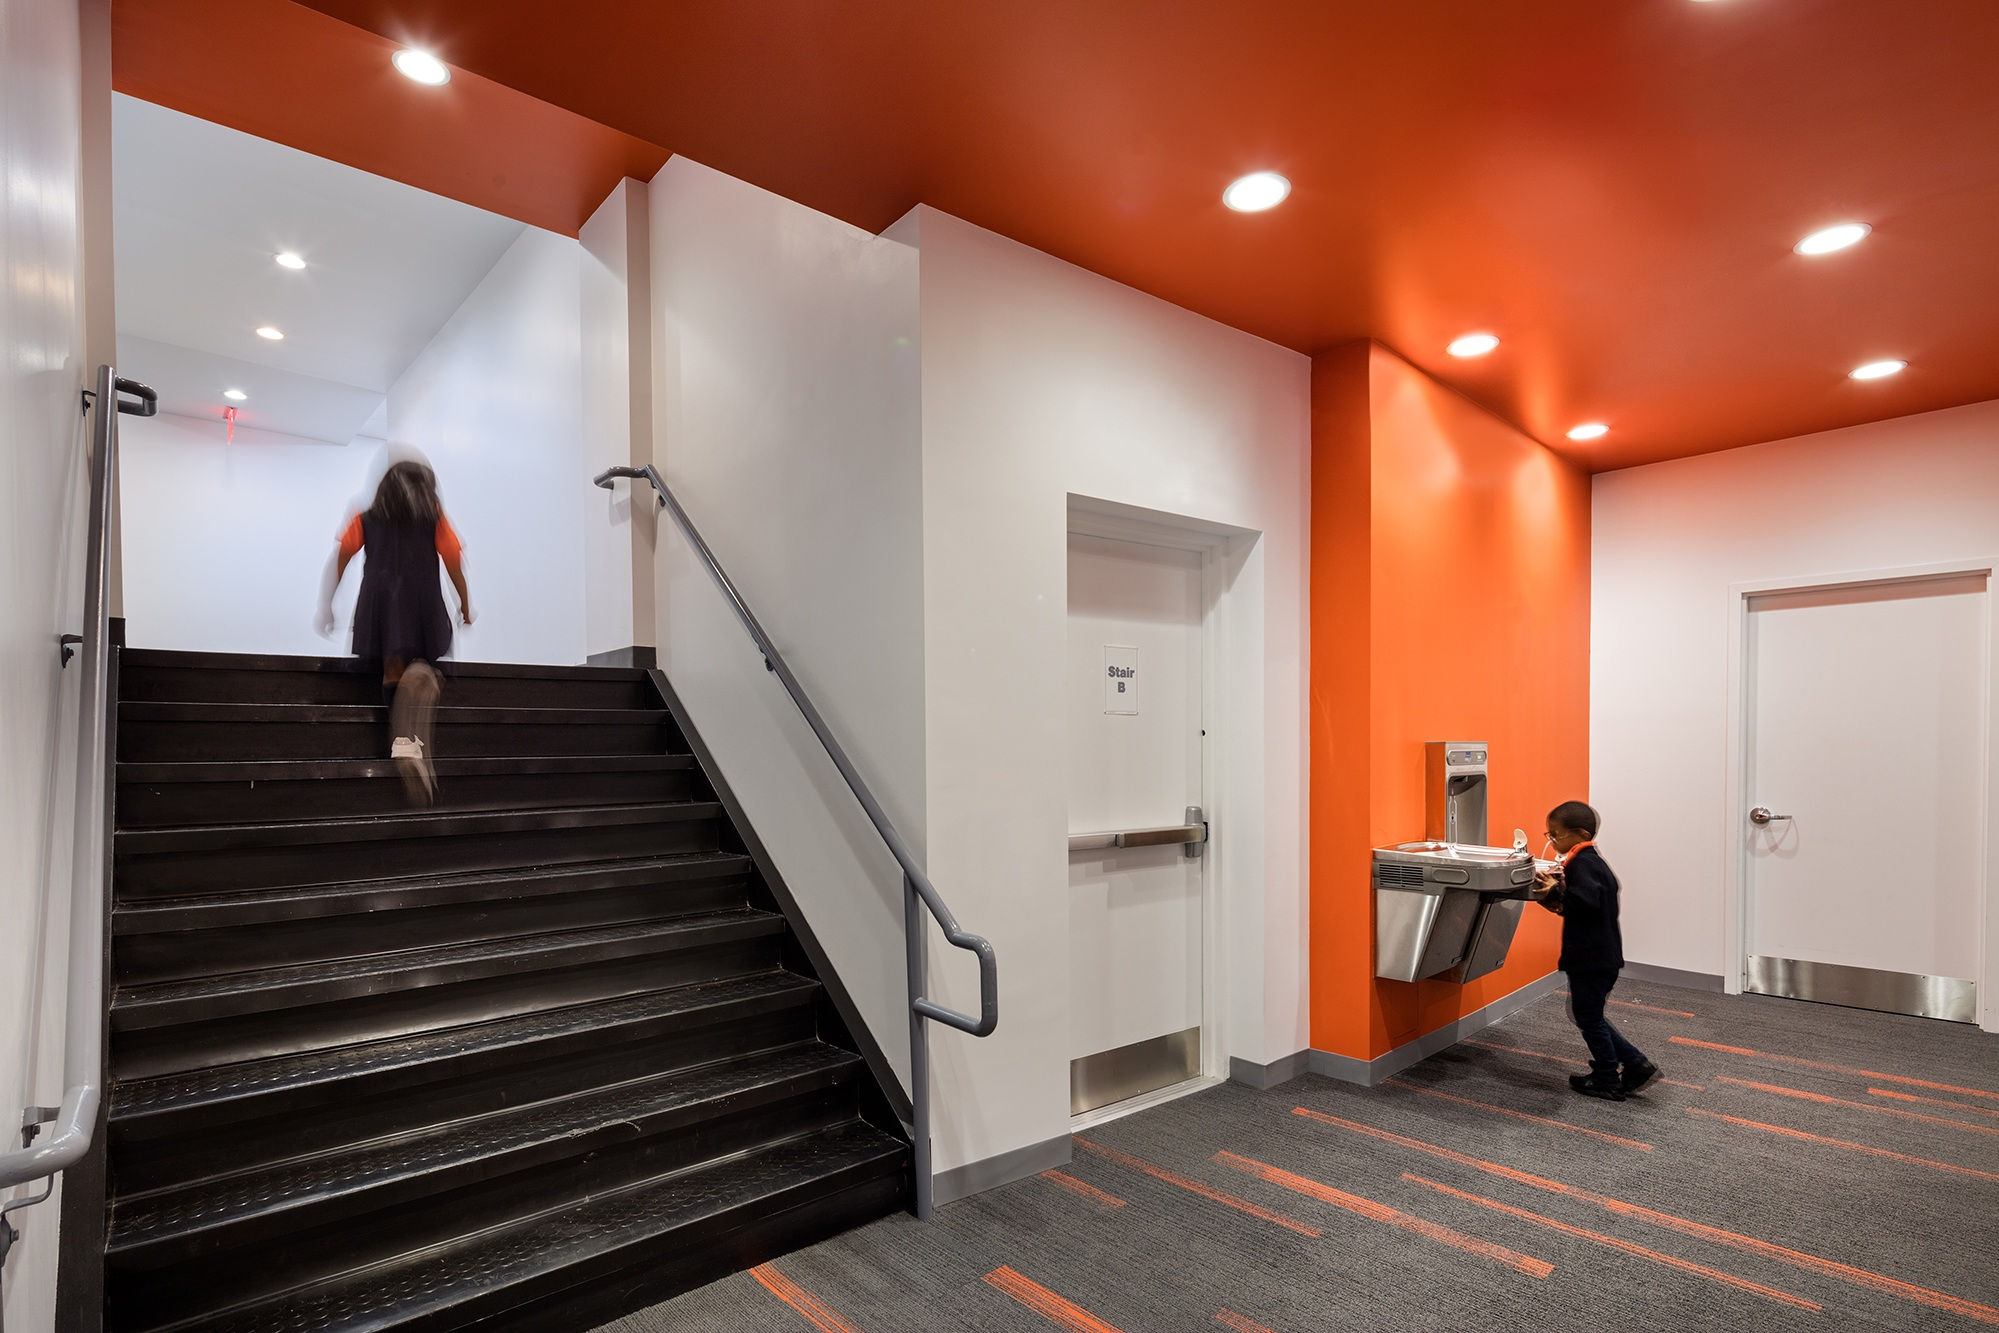 Second Phase Construction Complete at TEP - September 2017Construction is complete for the second phase of the 18,000 sf Pre-K, Kindergarten, and 1st grade TEP Charter School in Washington Heights.